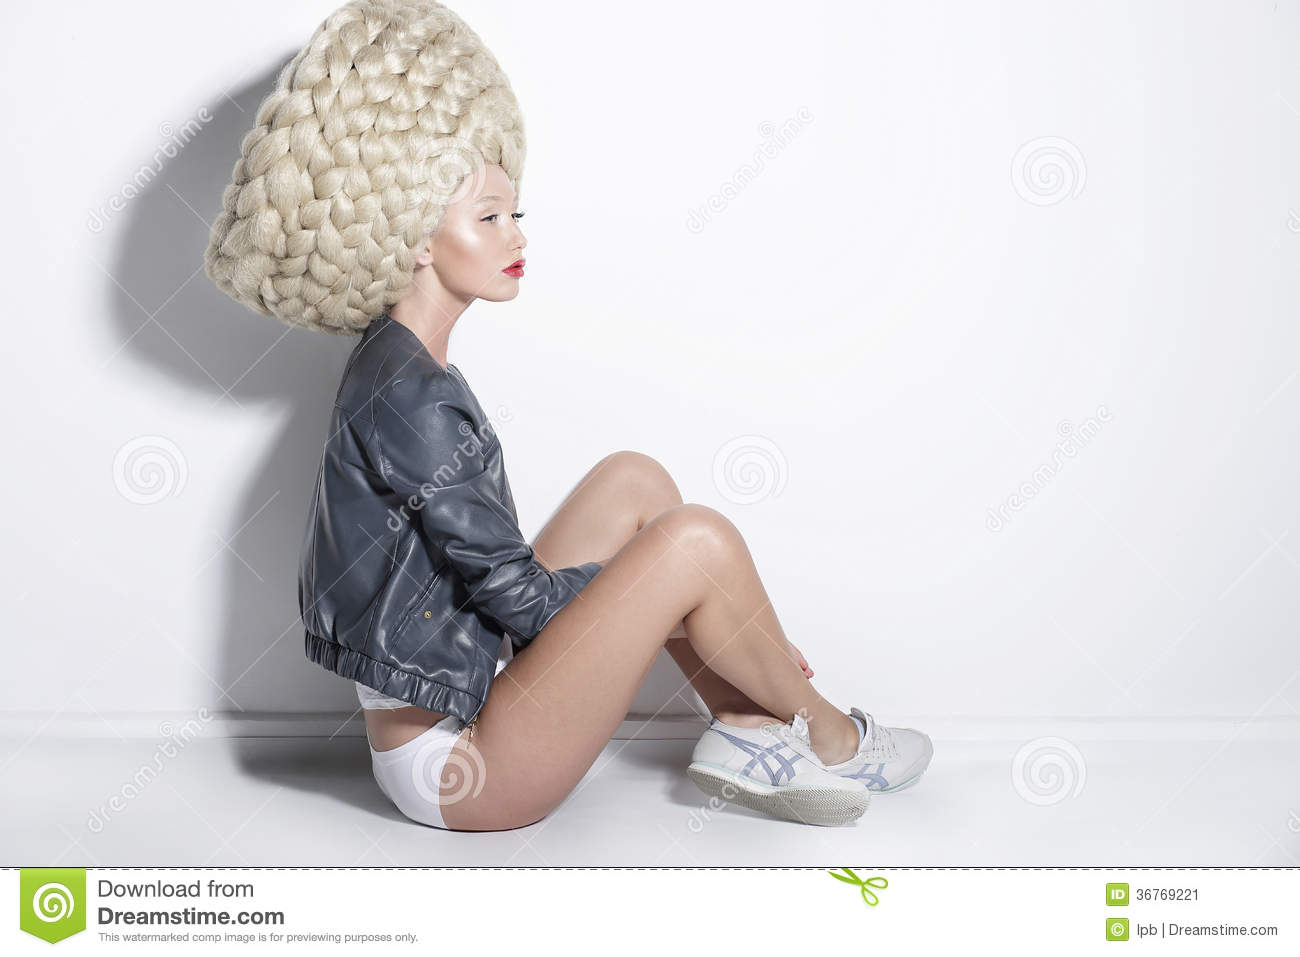 Fantasy Amp Inspiration Woman In Unusual Wig With False